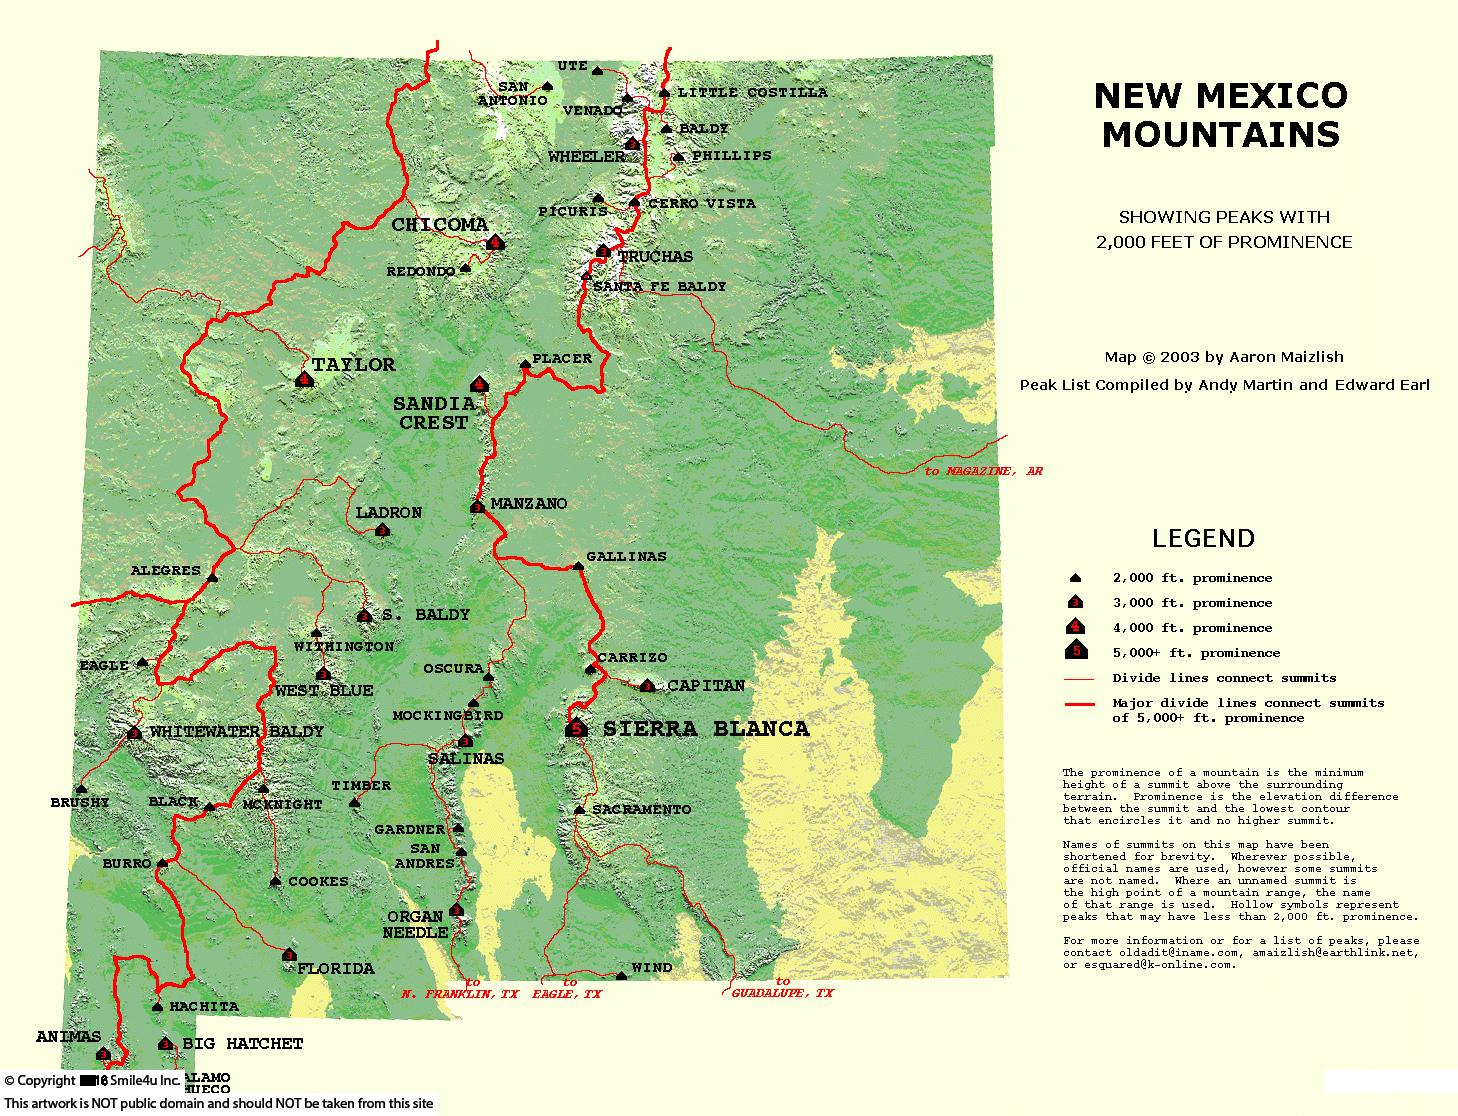 523890_watermarked_newmexicosummits.png